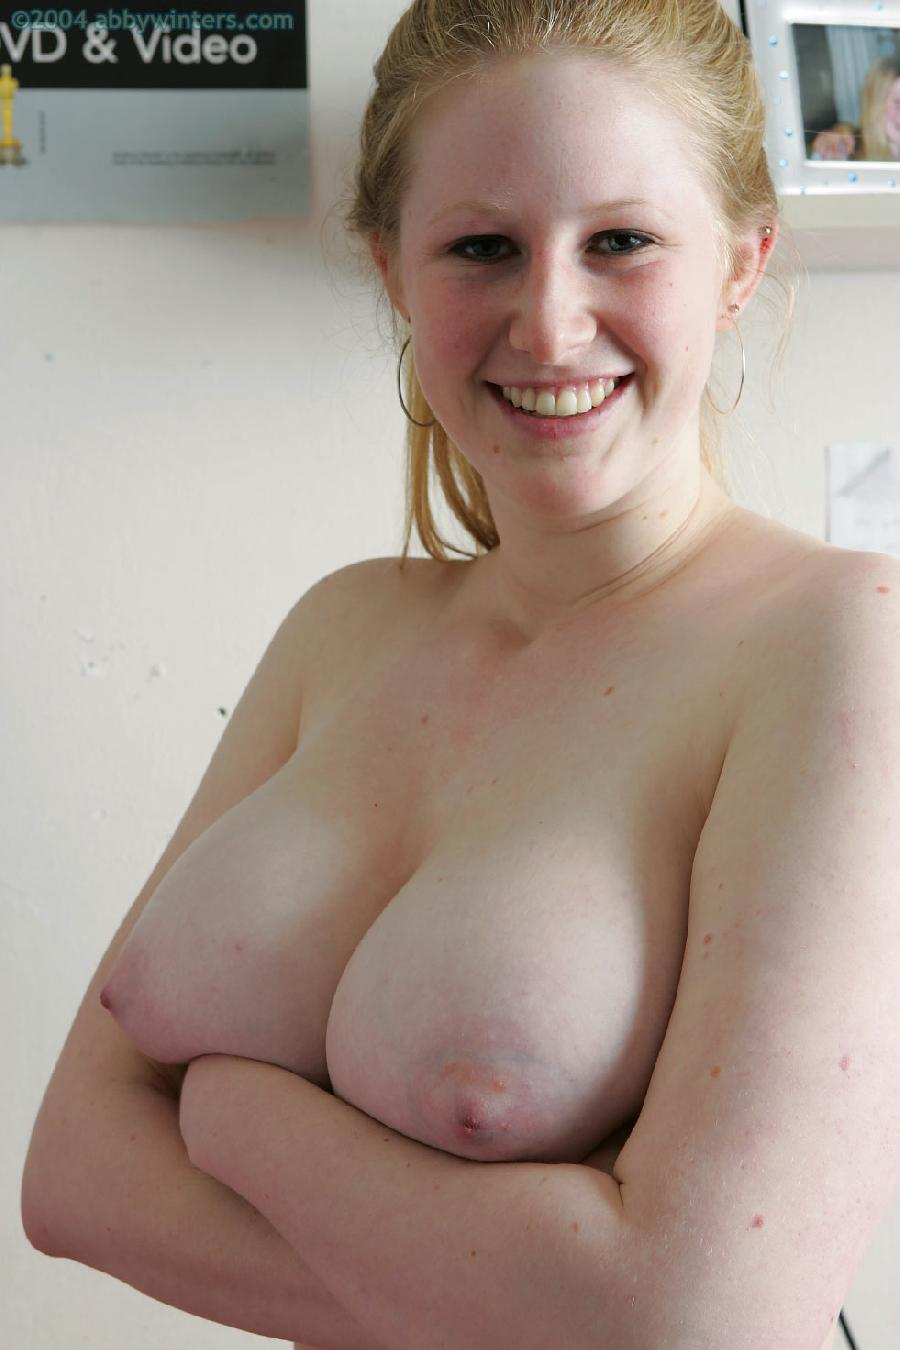 Amateur big titty videos but